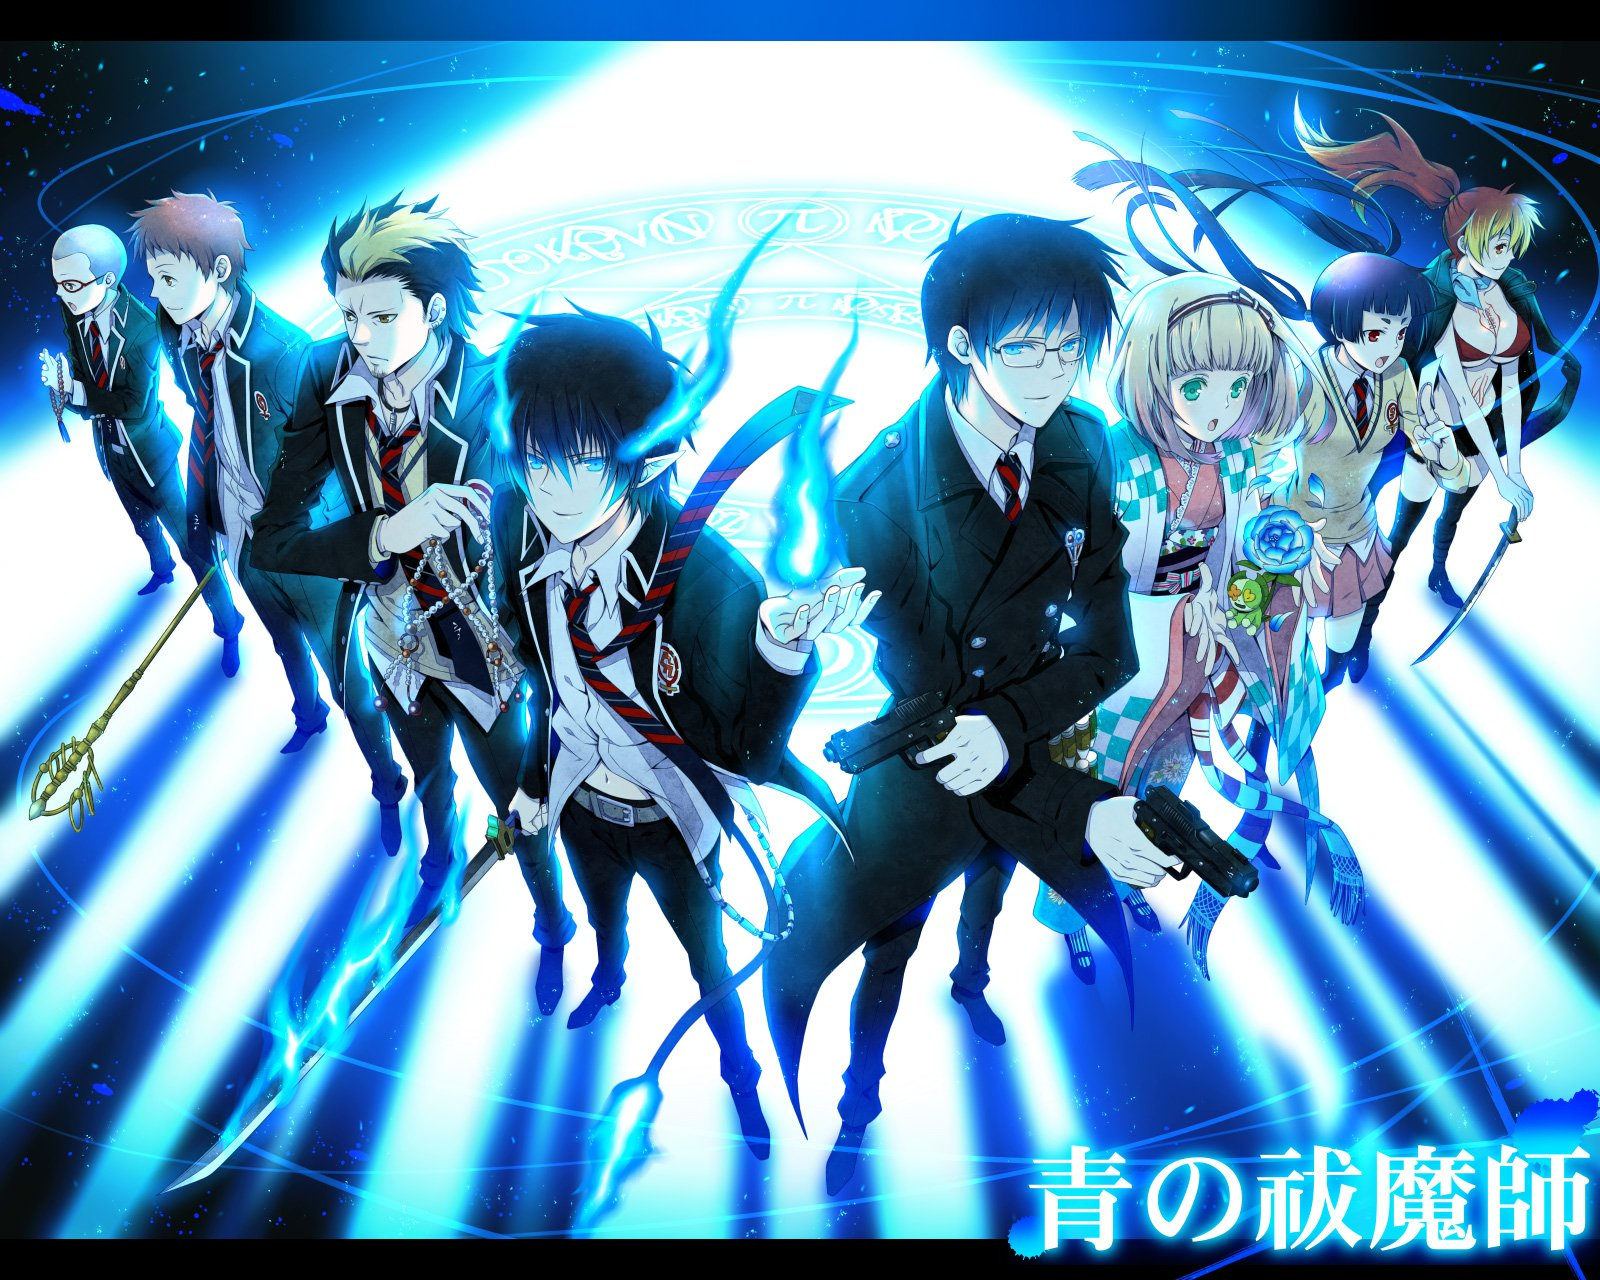 hd wallpaper background id640585 1600x1280 anime blue exorcist